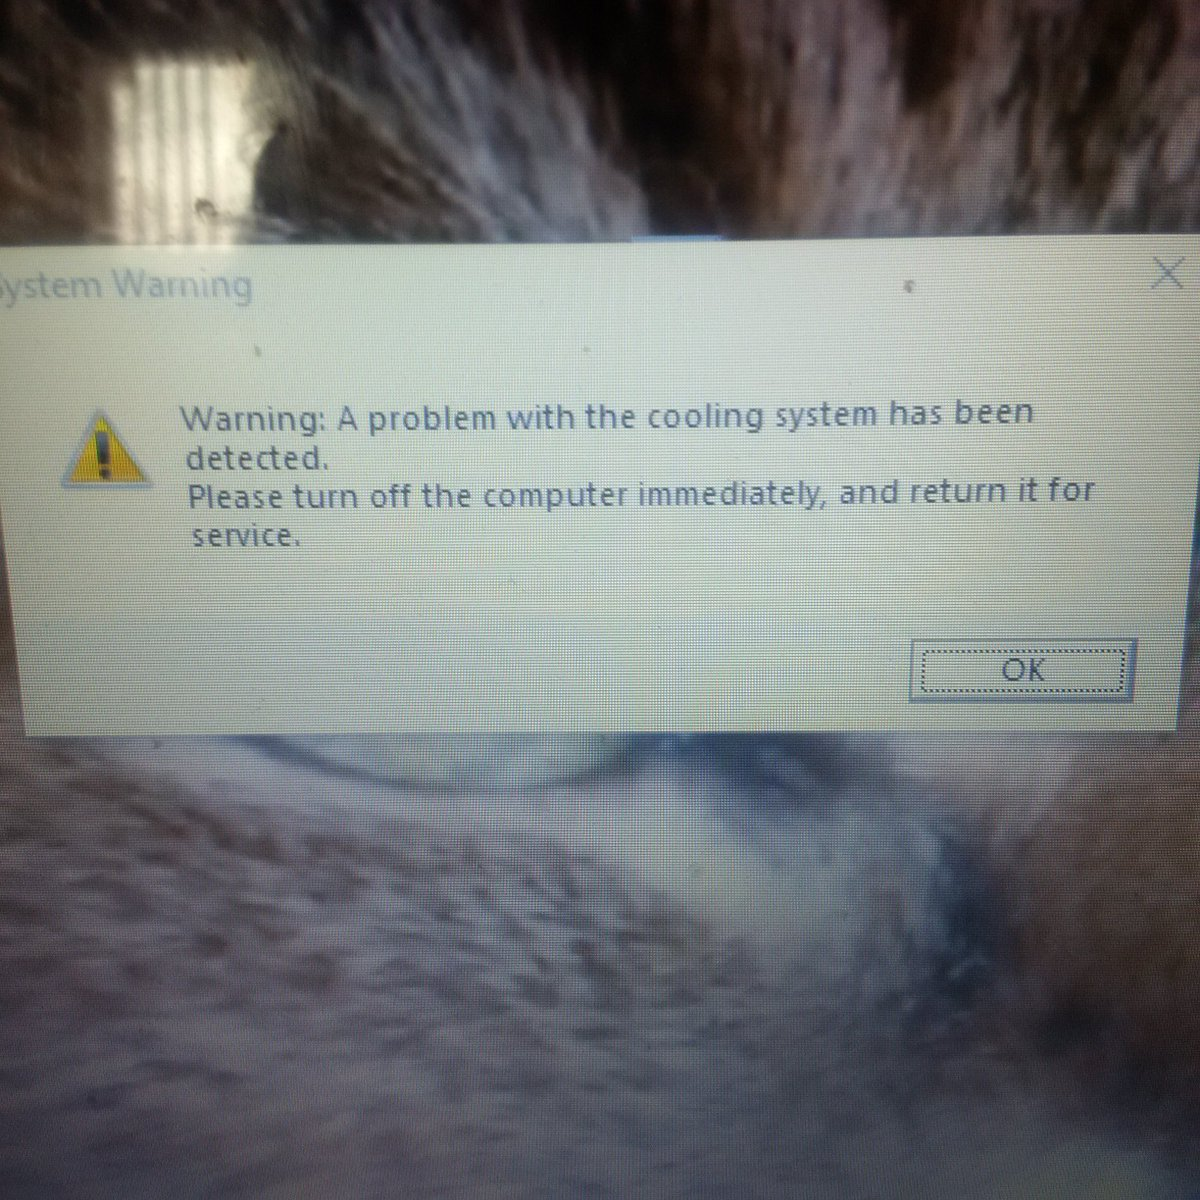 After seeing this, I had just enough time to backup my data before it shut itself down.  #VirtualAssistant <br>http://pic.twitter.com/mAy29Ts6SU